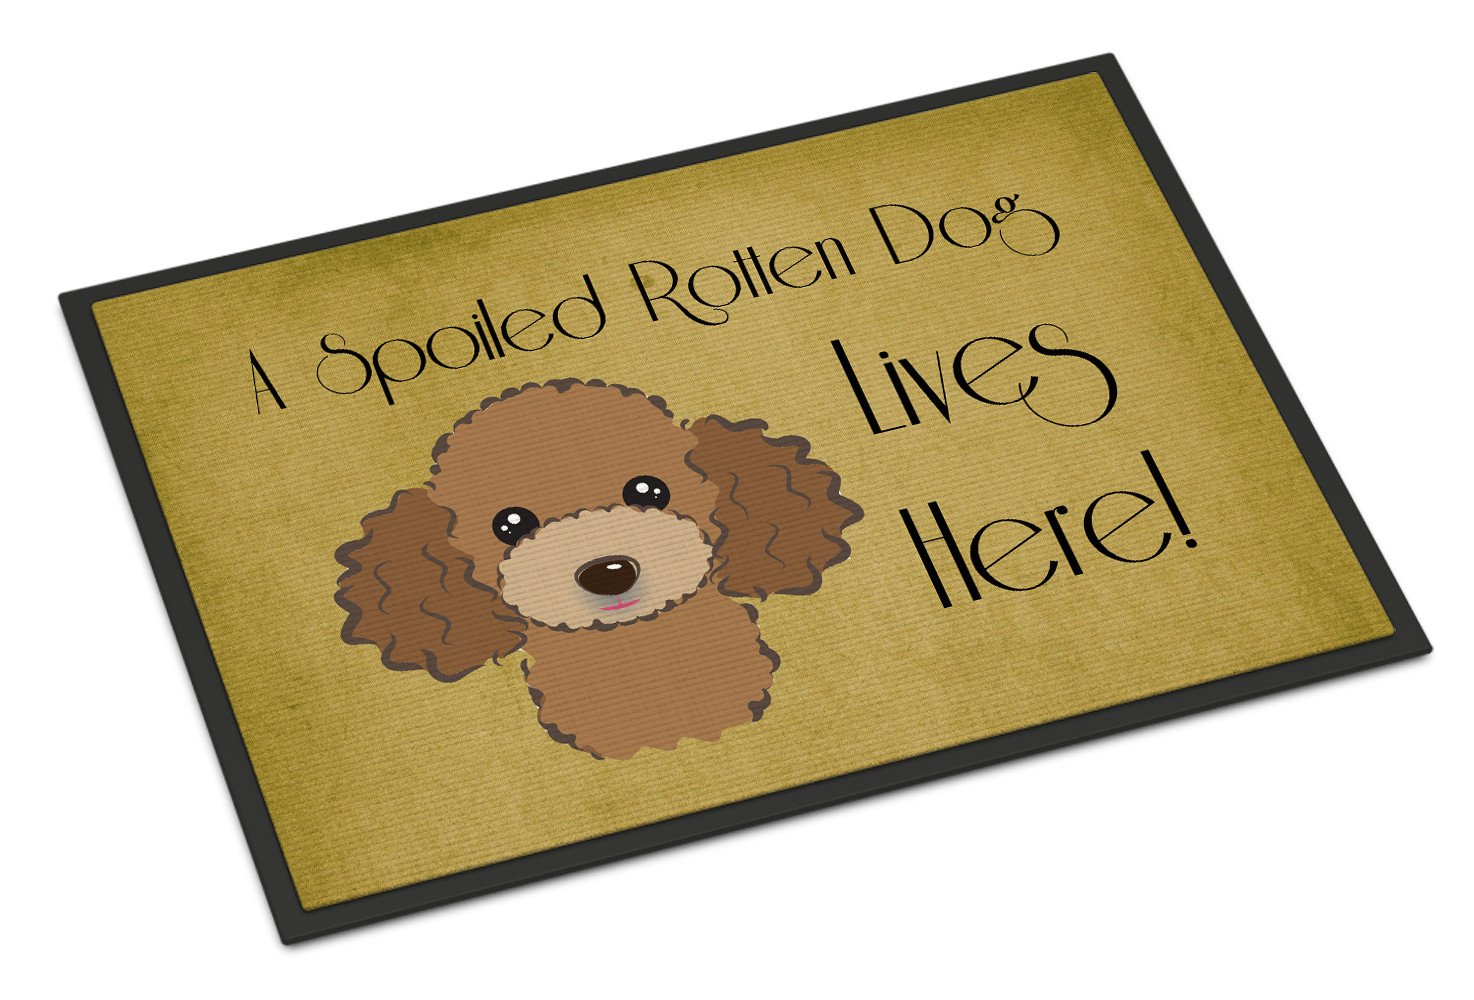 Chocolate Brown Poodle Spoiled Dog Lives Here Indoor or Outdoor Mat 18x27 BB1504MAT - the-store.com